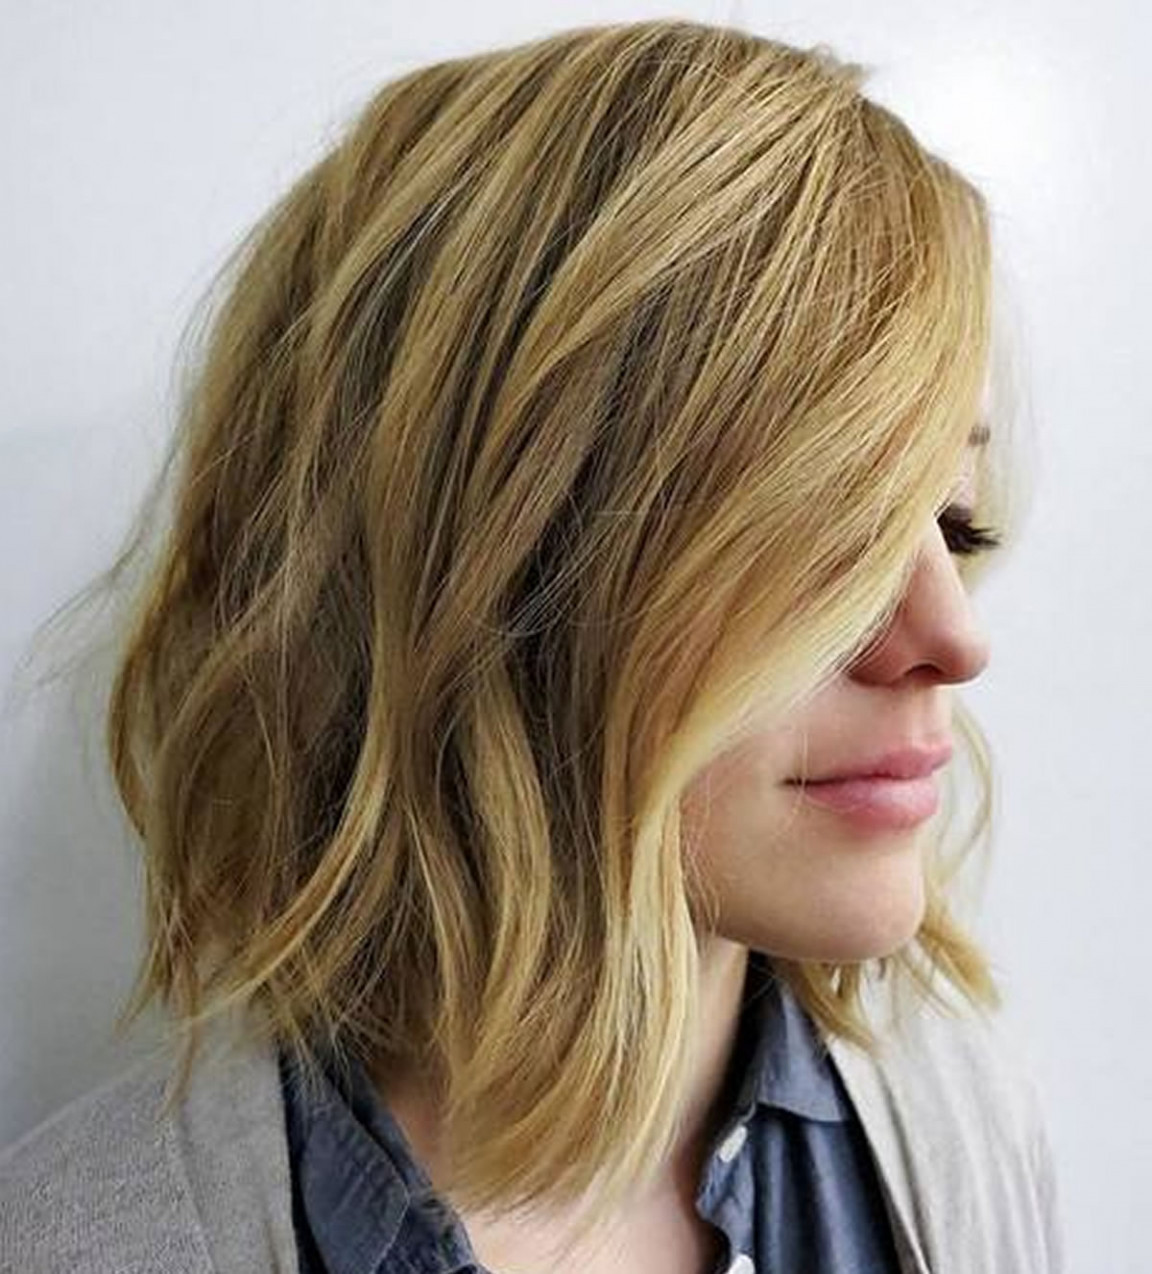 Best ideas about DIY Bob Haircut . Save or Pin Bob Hairstyle Diy Bob Hairstyles for 2018 Inspiring 60 Now.